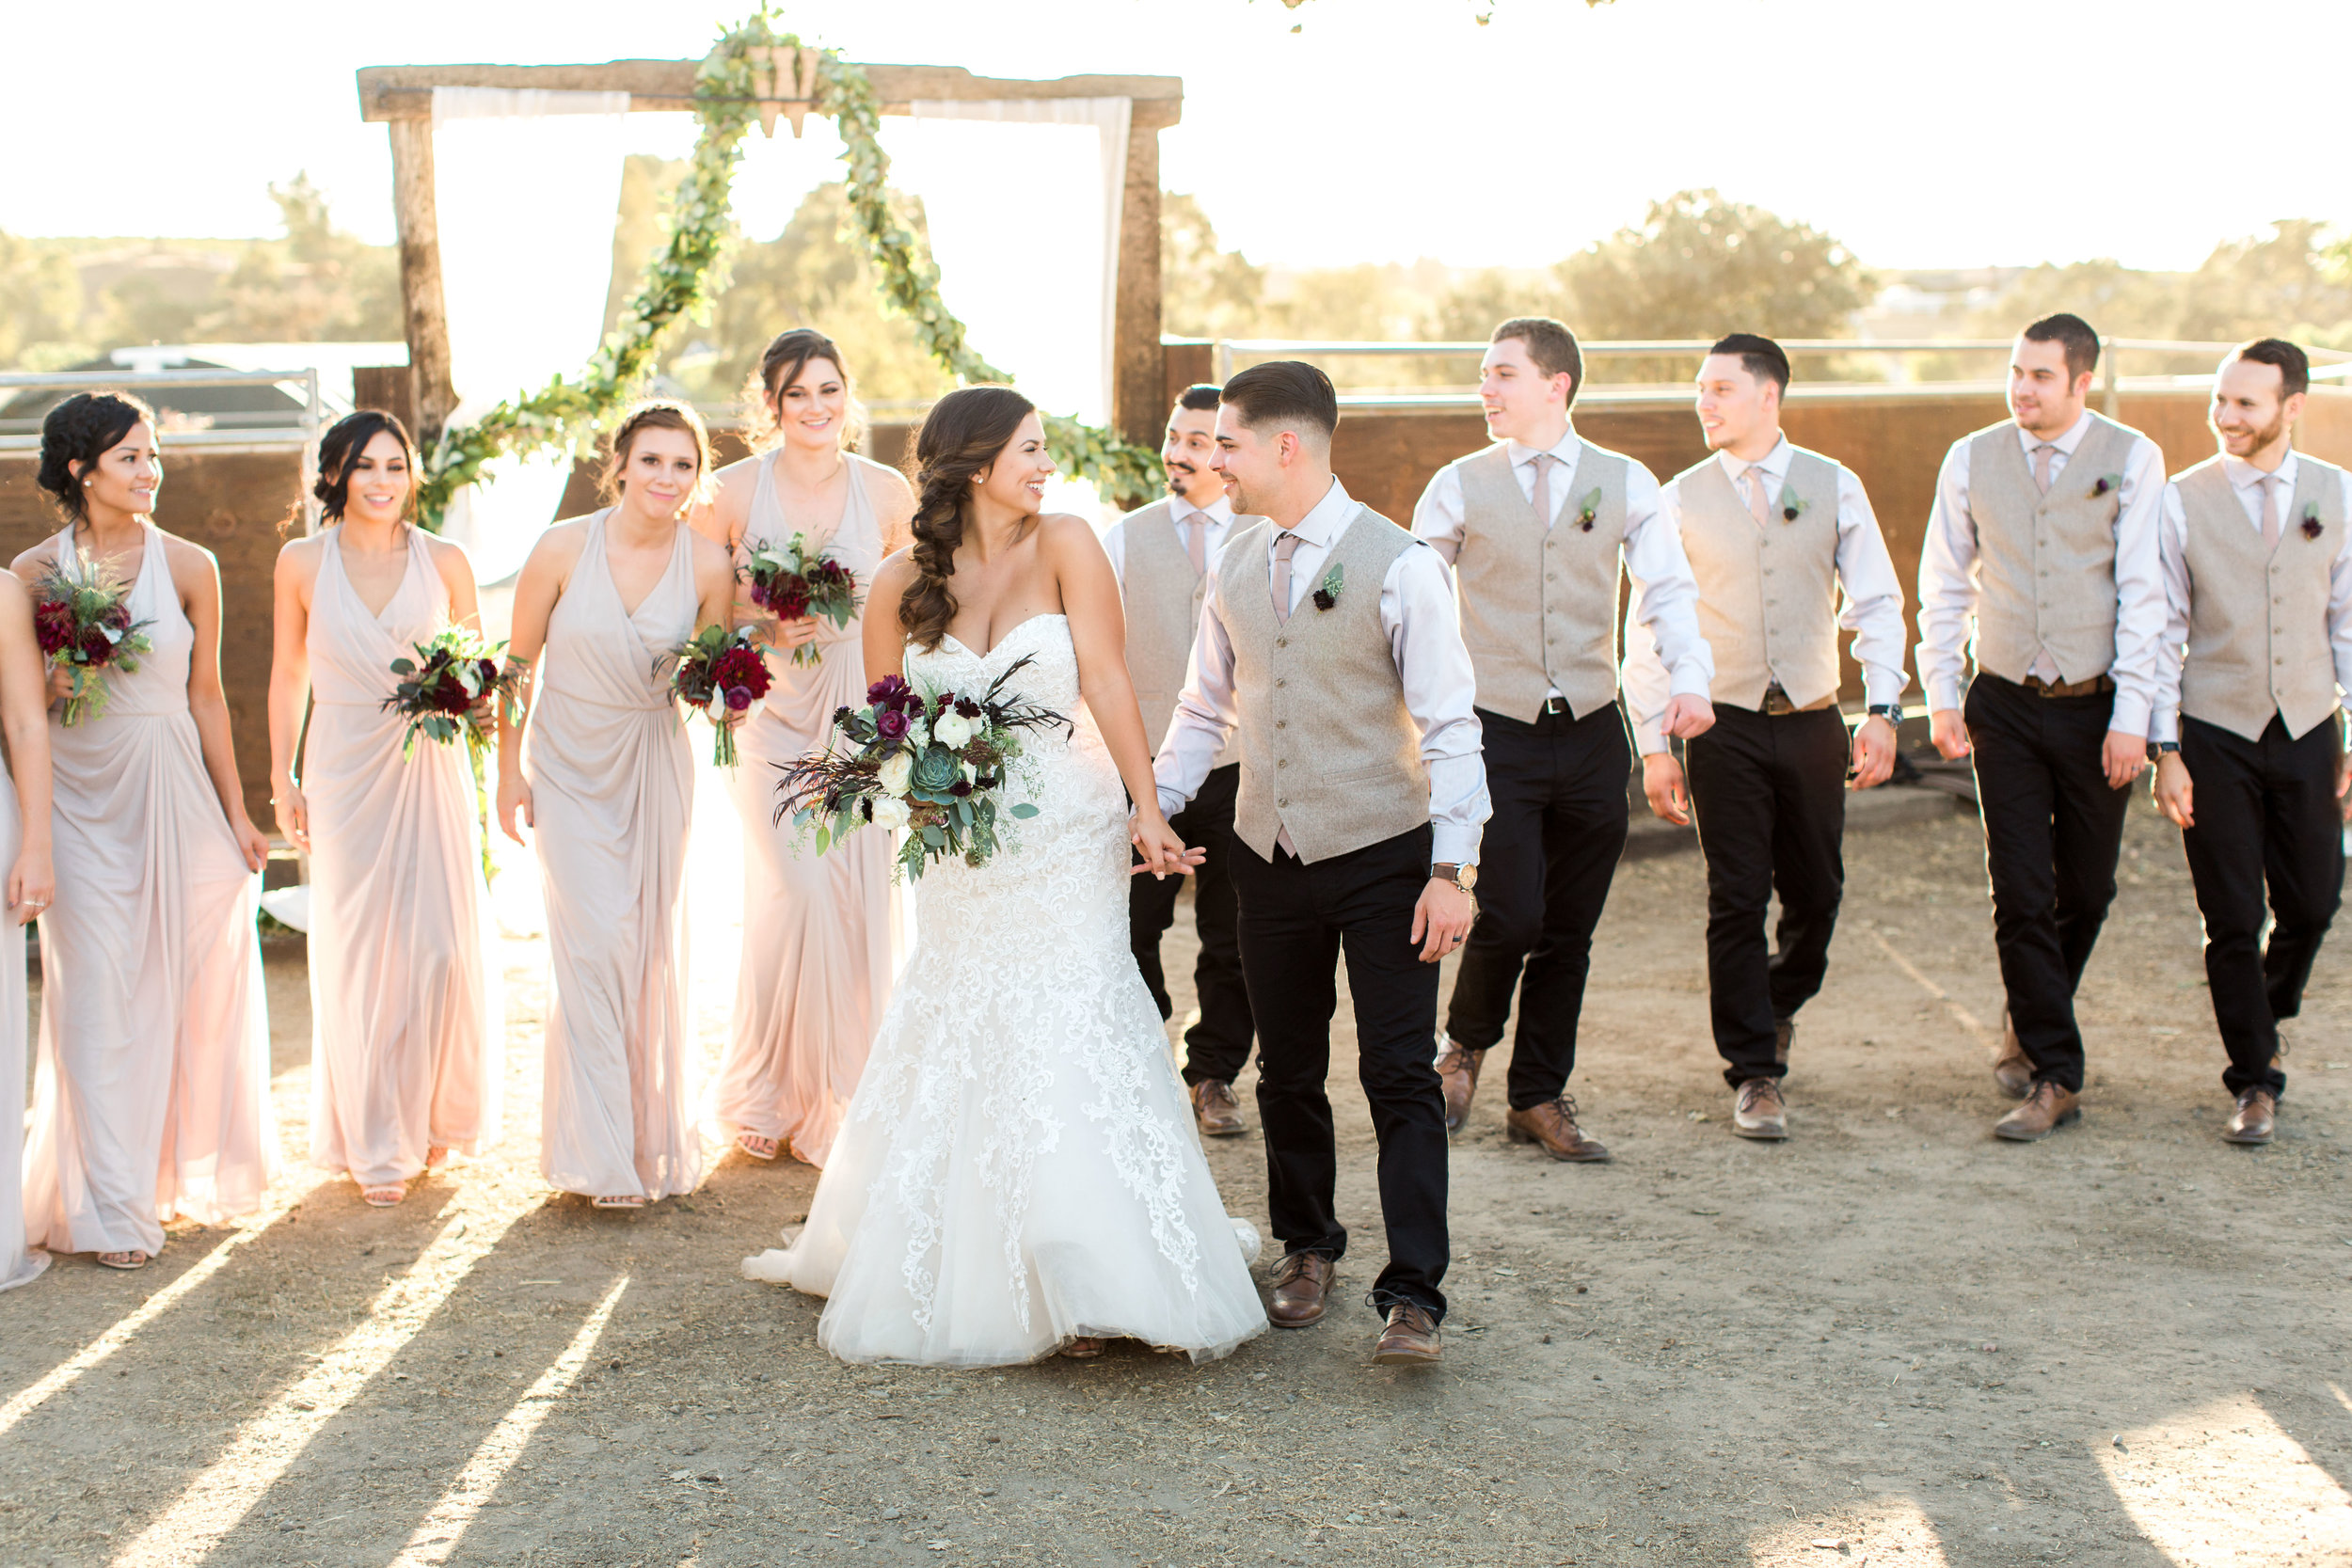 rustic-inspired-ranch-wedding-livermore-california-47.jpg